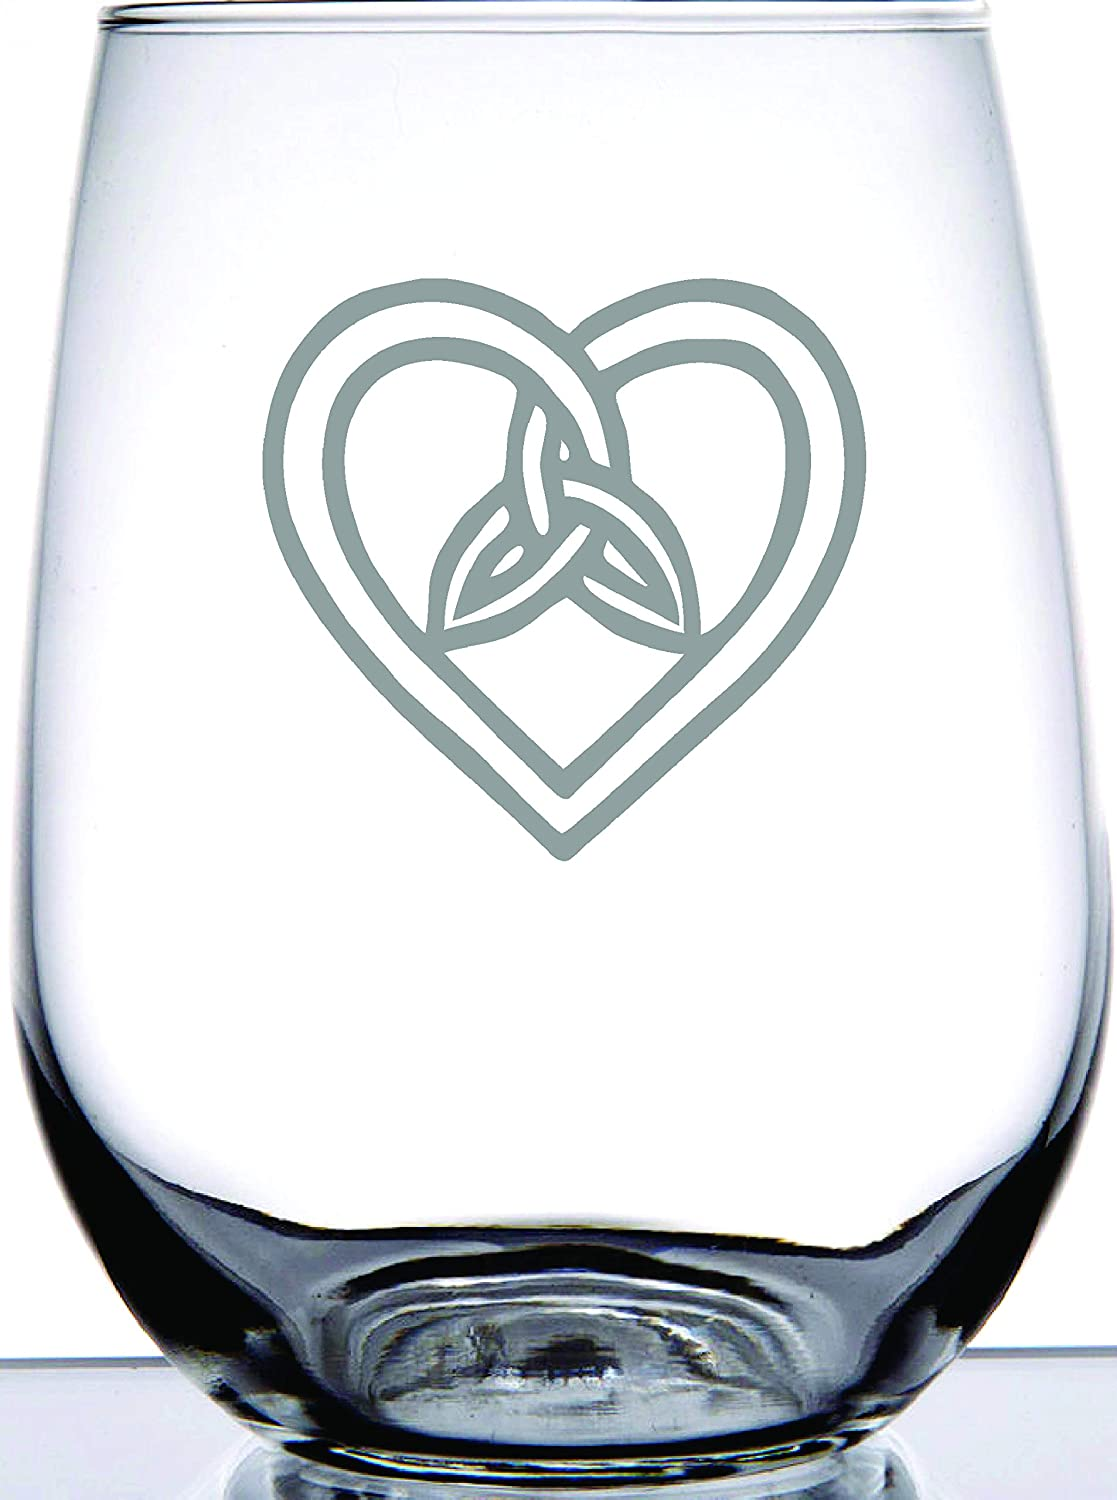 Amazon Com Ie Laserware Irish Celtic Heart And Trinity Knot Laser Etched Engraved Stemless Wine Glass Great Irish Gift Wine Glasses